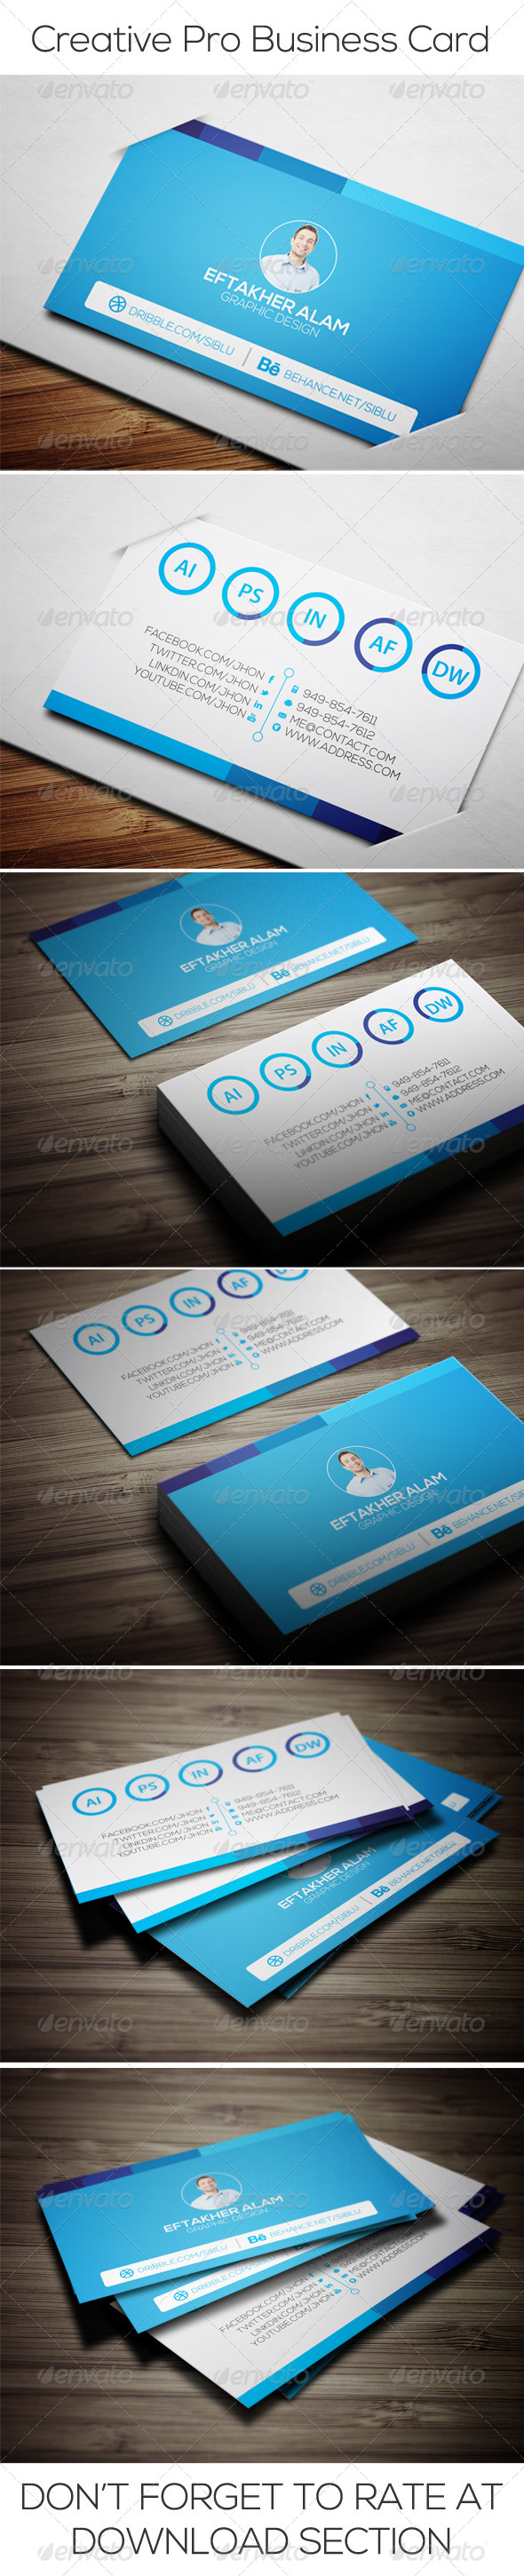 Creative Pro Business Card - Business Cards Print Templates